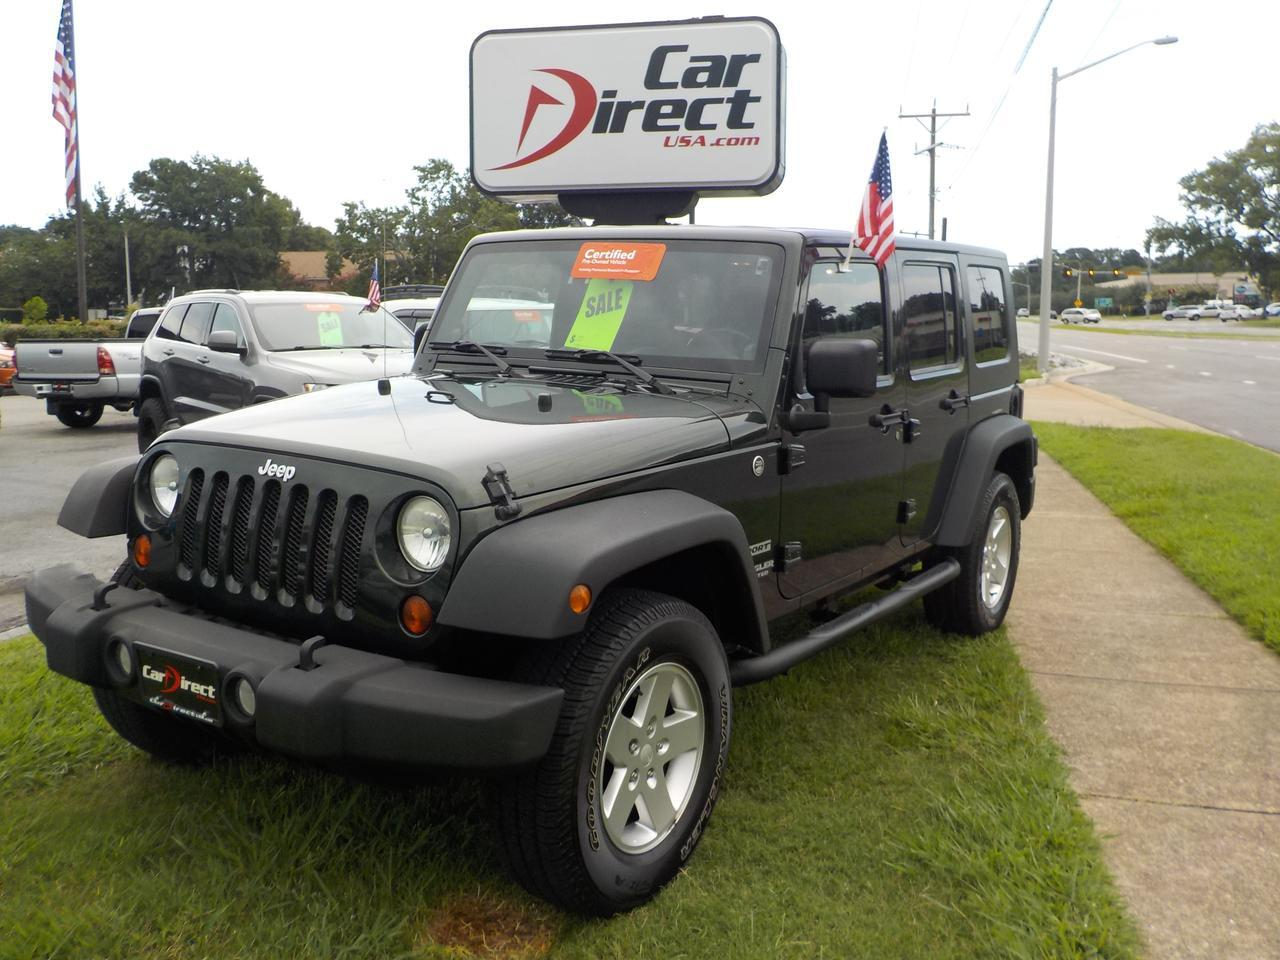 2010 jeep wrangler unlimited sport 4x4 one owner certified pre owned tow package hard top. Black Bedroom Furniture Sets. Home Design Ideas